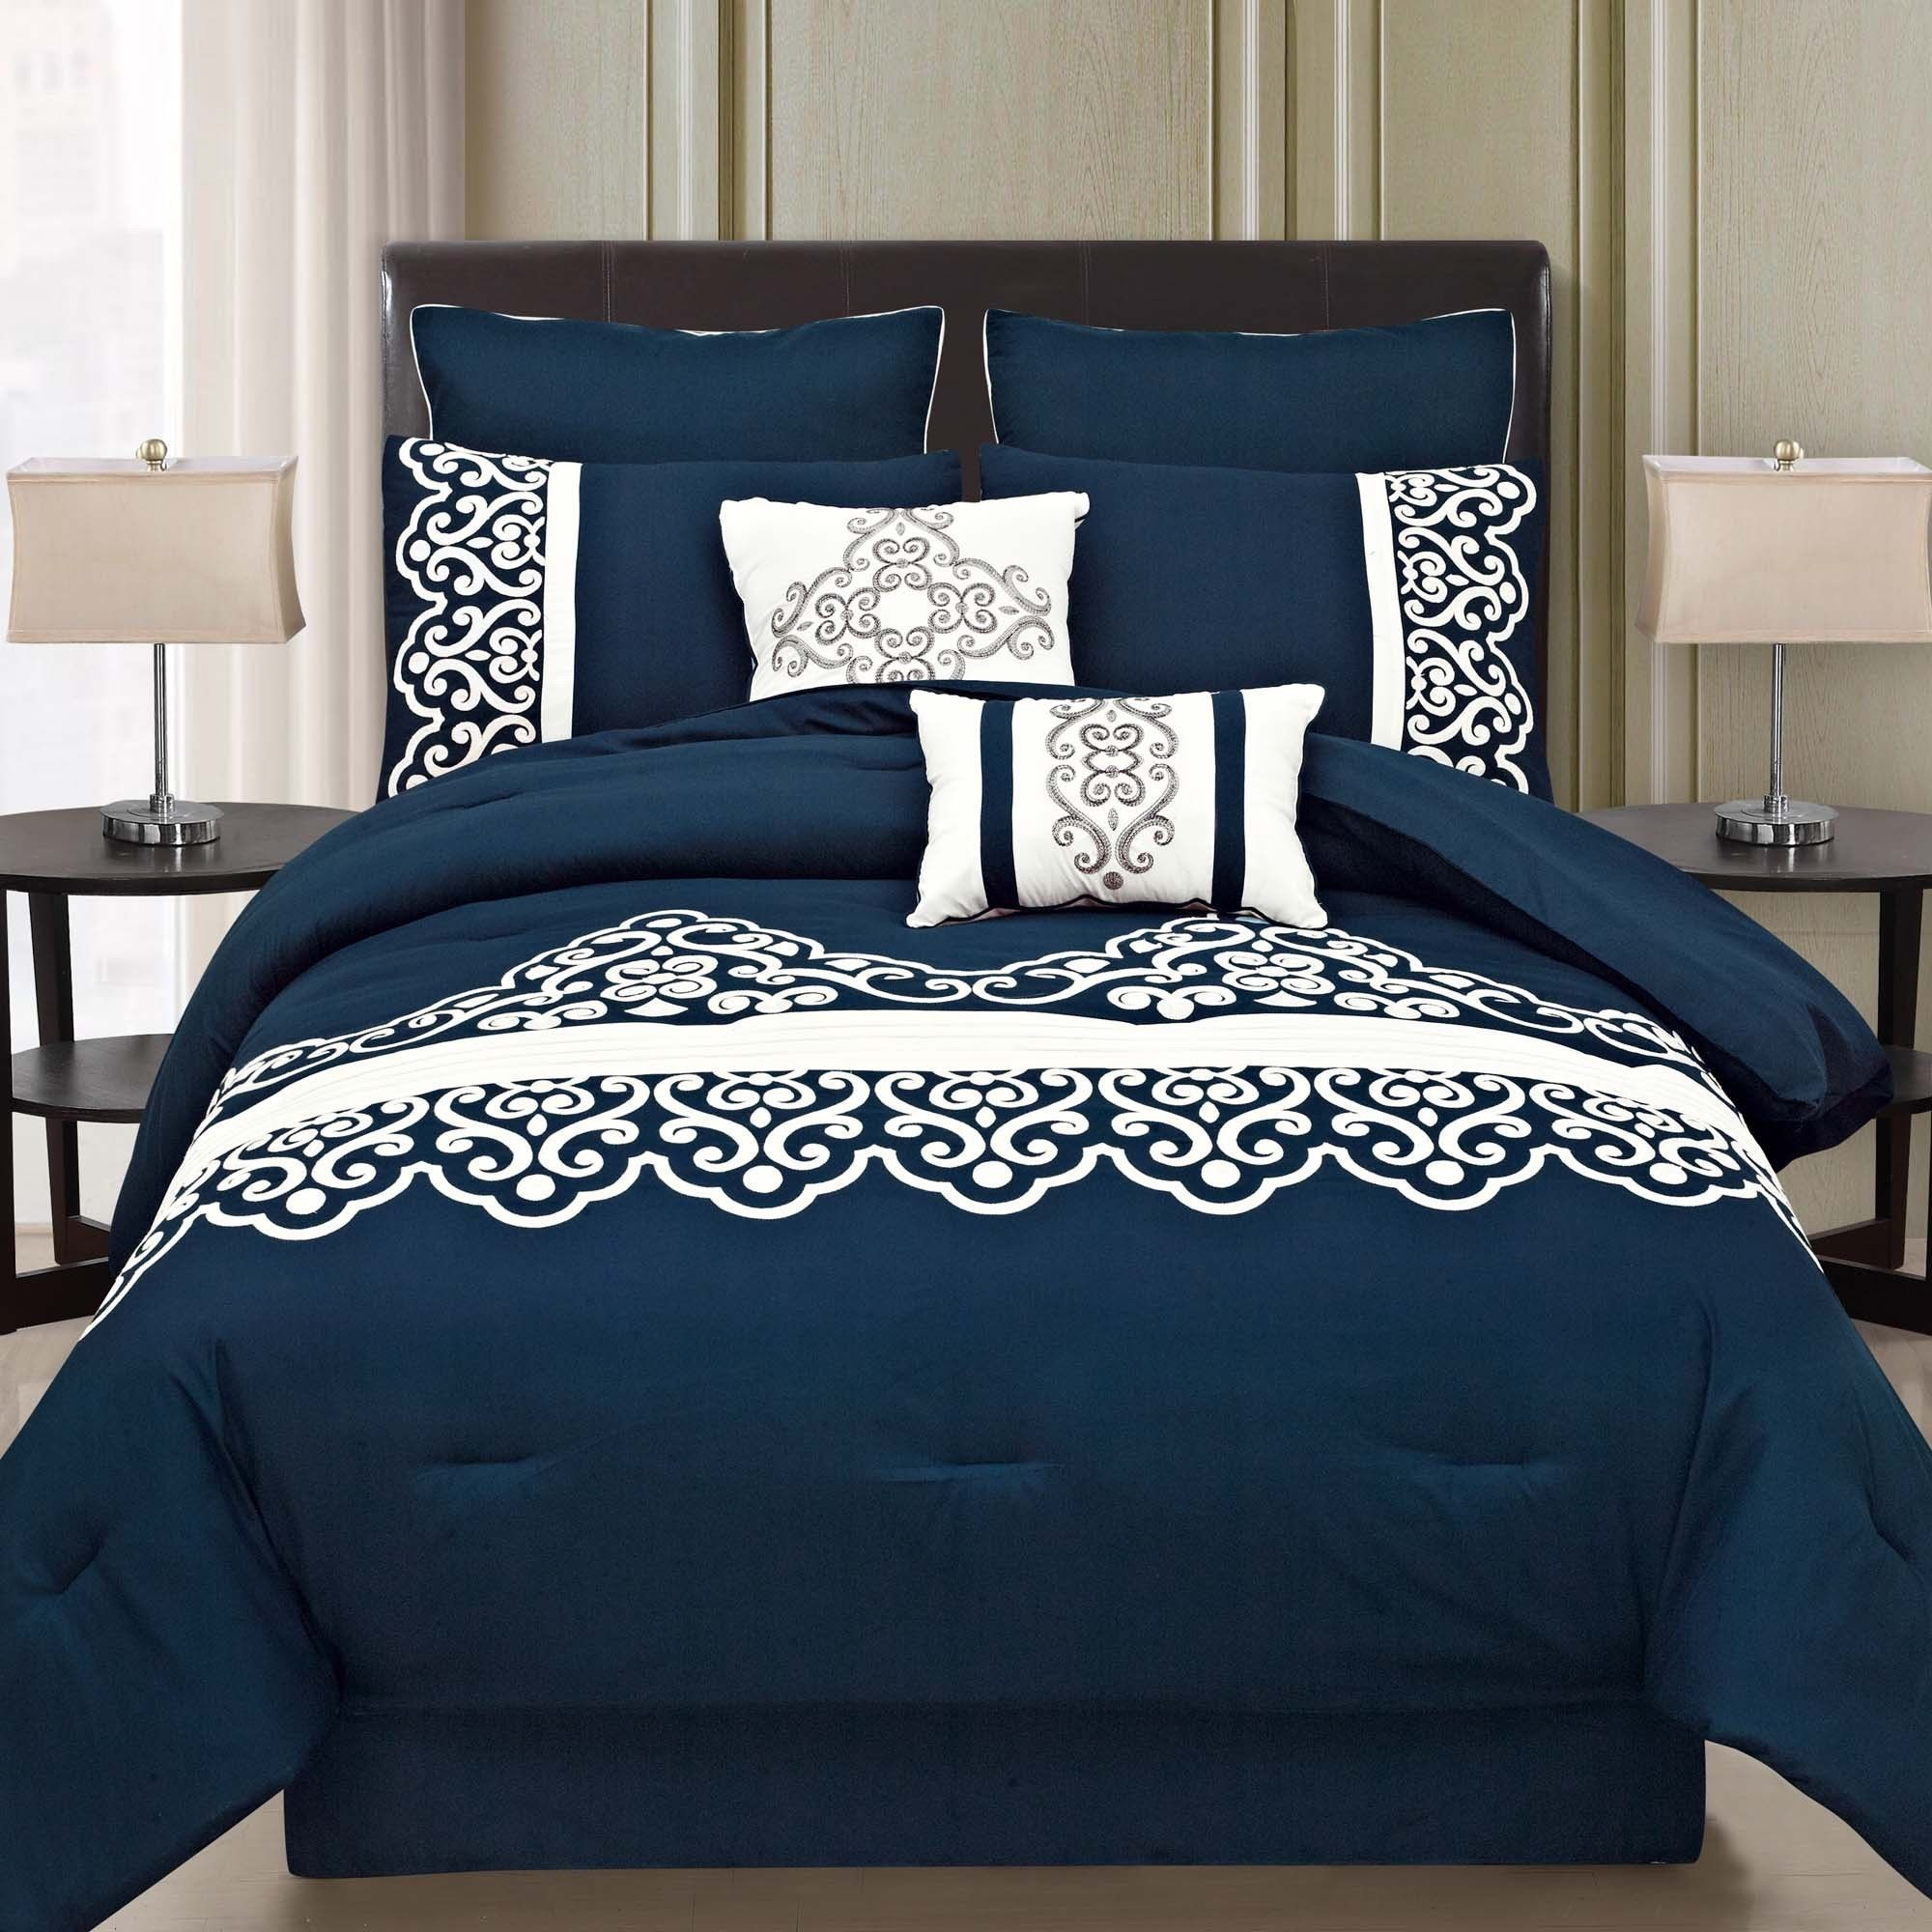 comforter eiffel coral com full kitchen new girls tower pcs set xl bed amazon dp reverisble home blue teens comforters paris